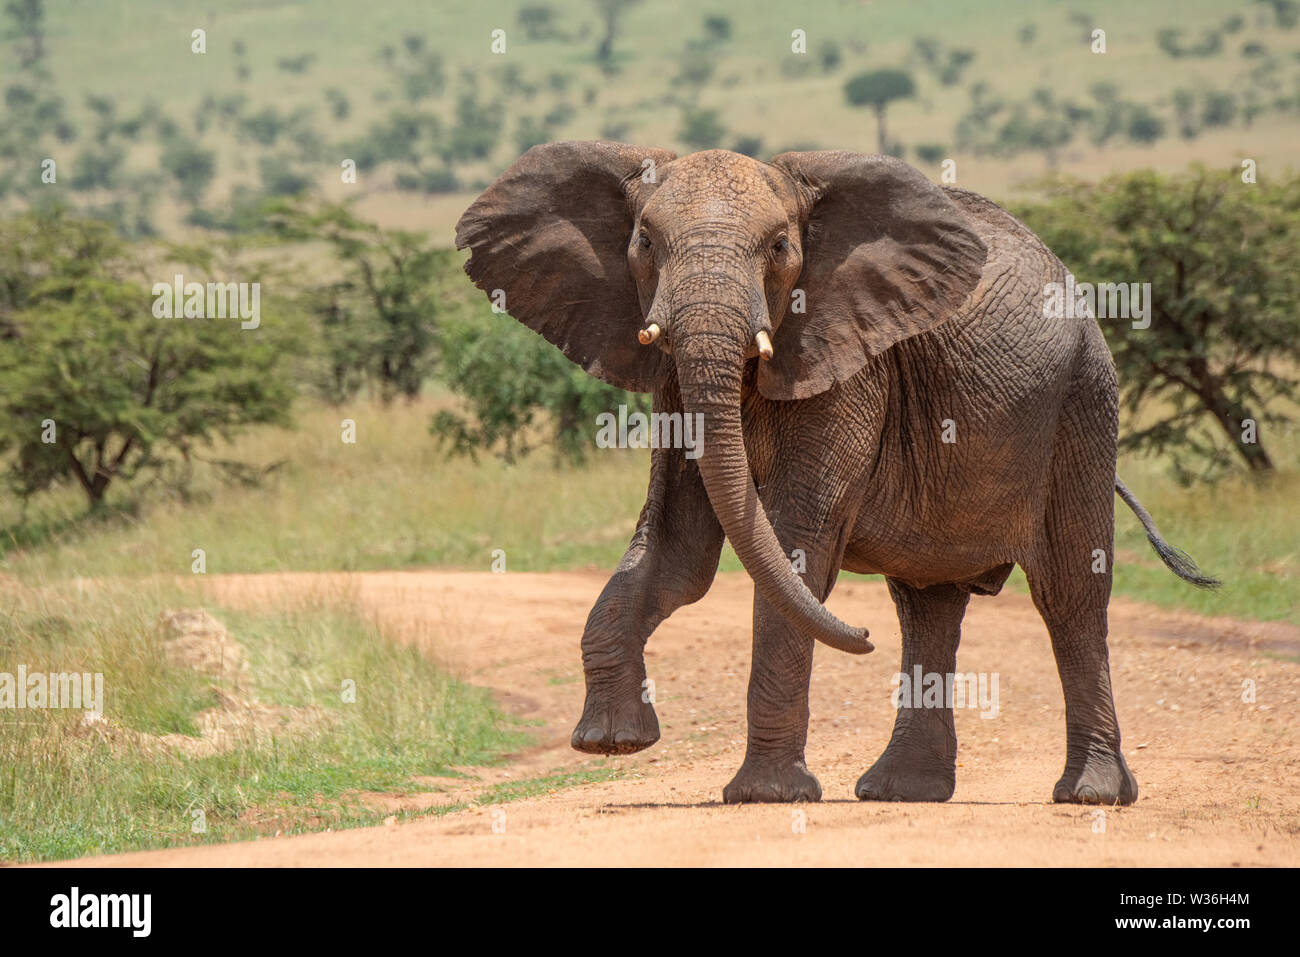 African elephant lifts foot while crossing track - Stock Image